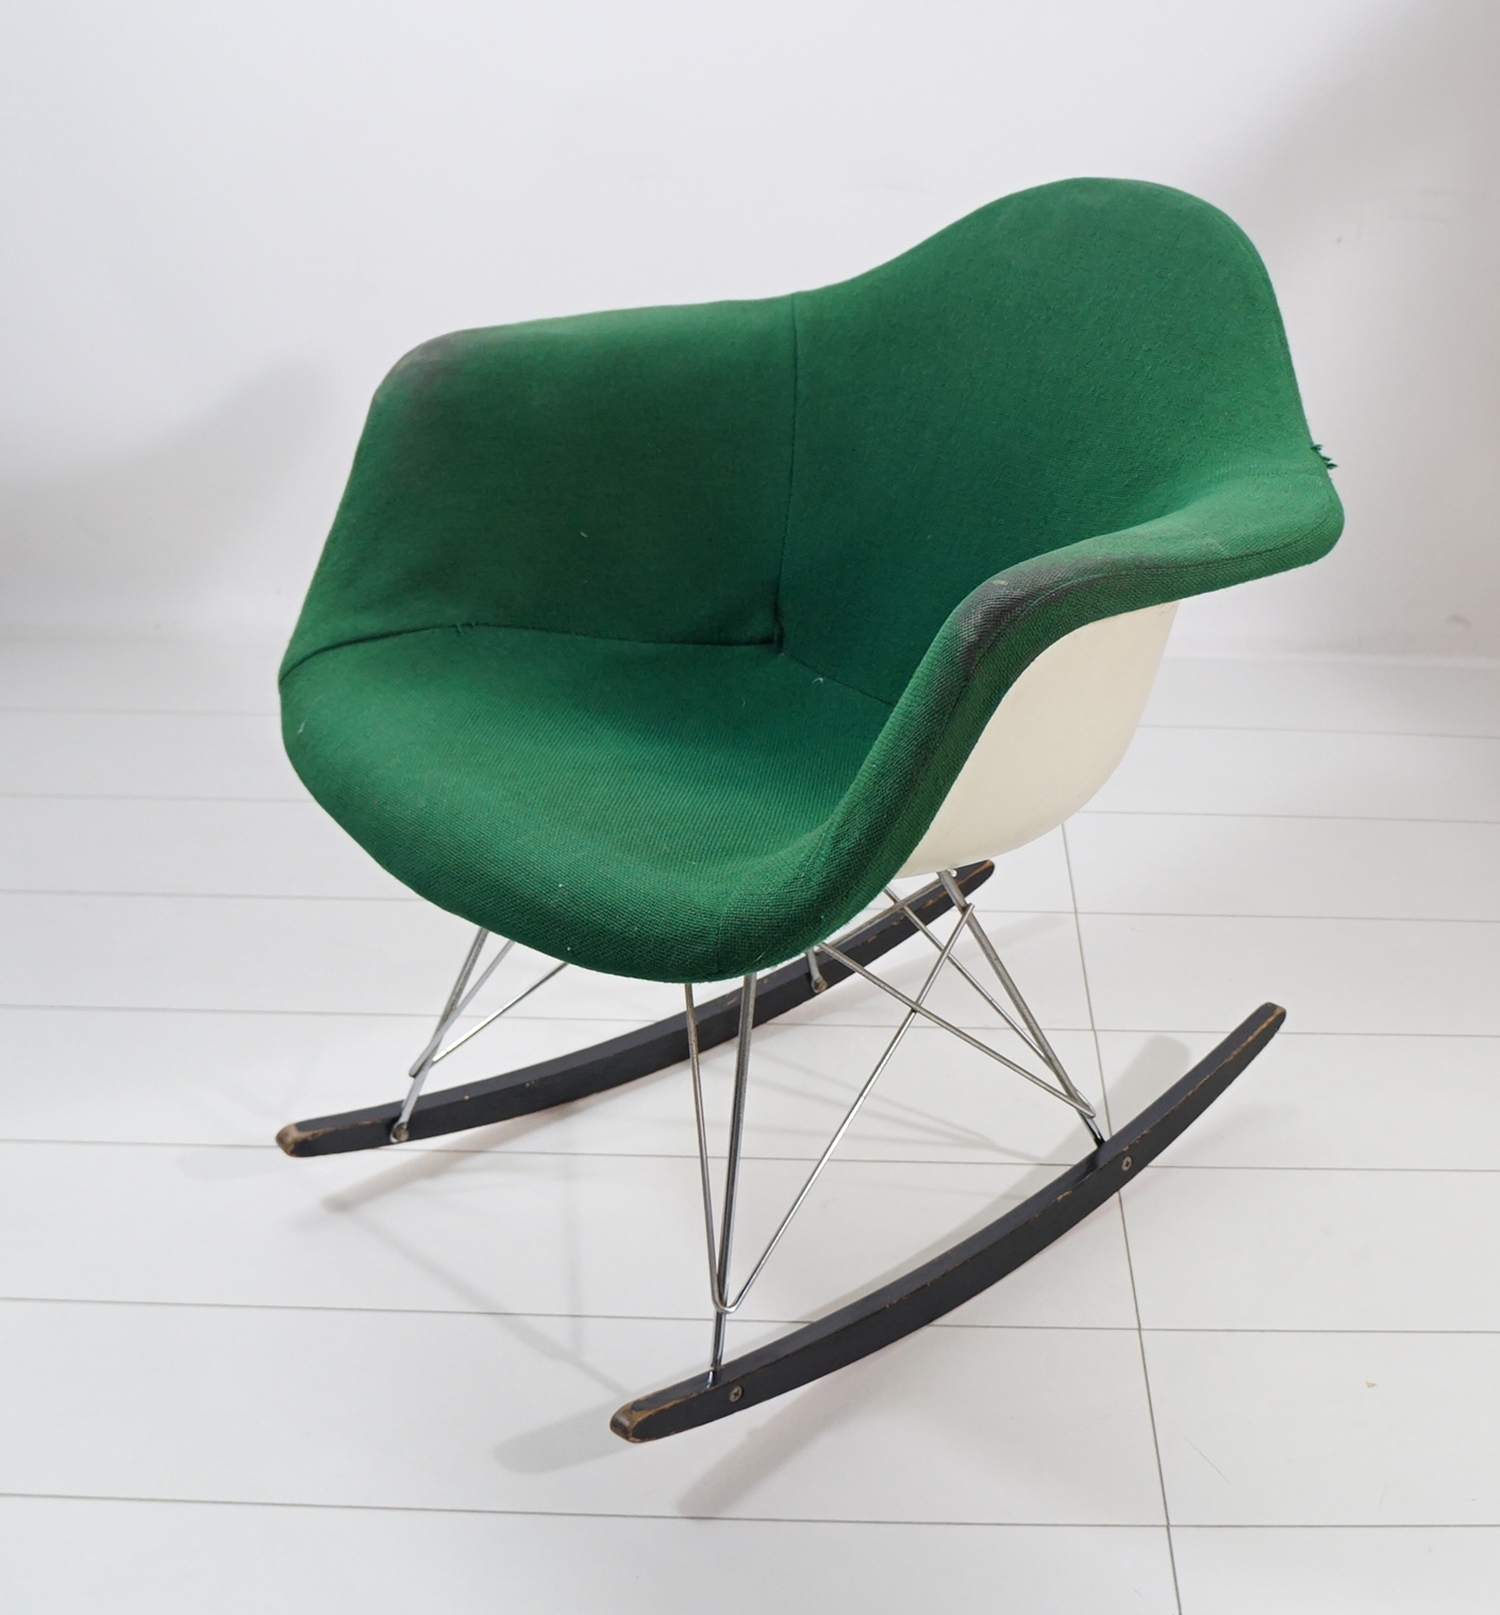 hermann miller charles eames schaukelstuhl rocker rocking chair. Black Bedroom Furniture Sets. Home Design Ideas